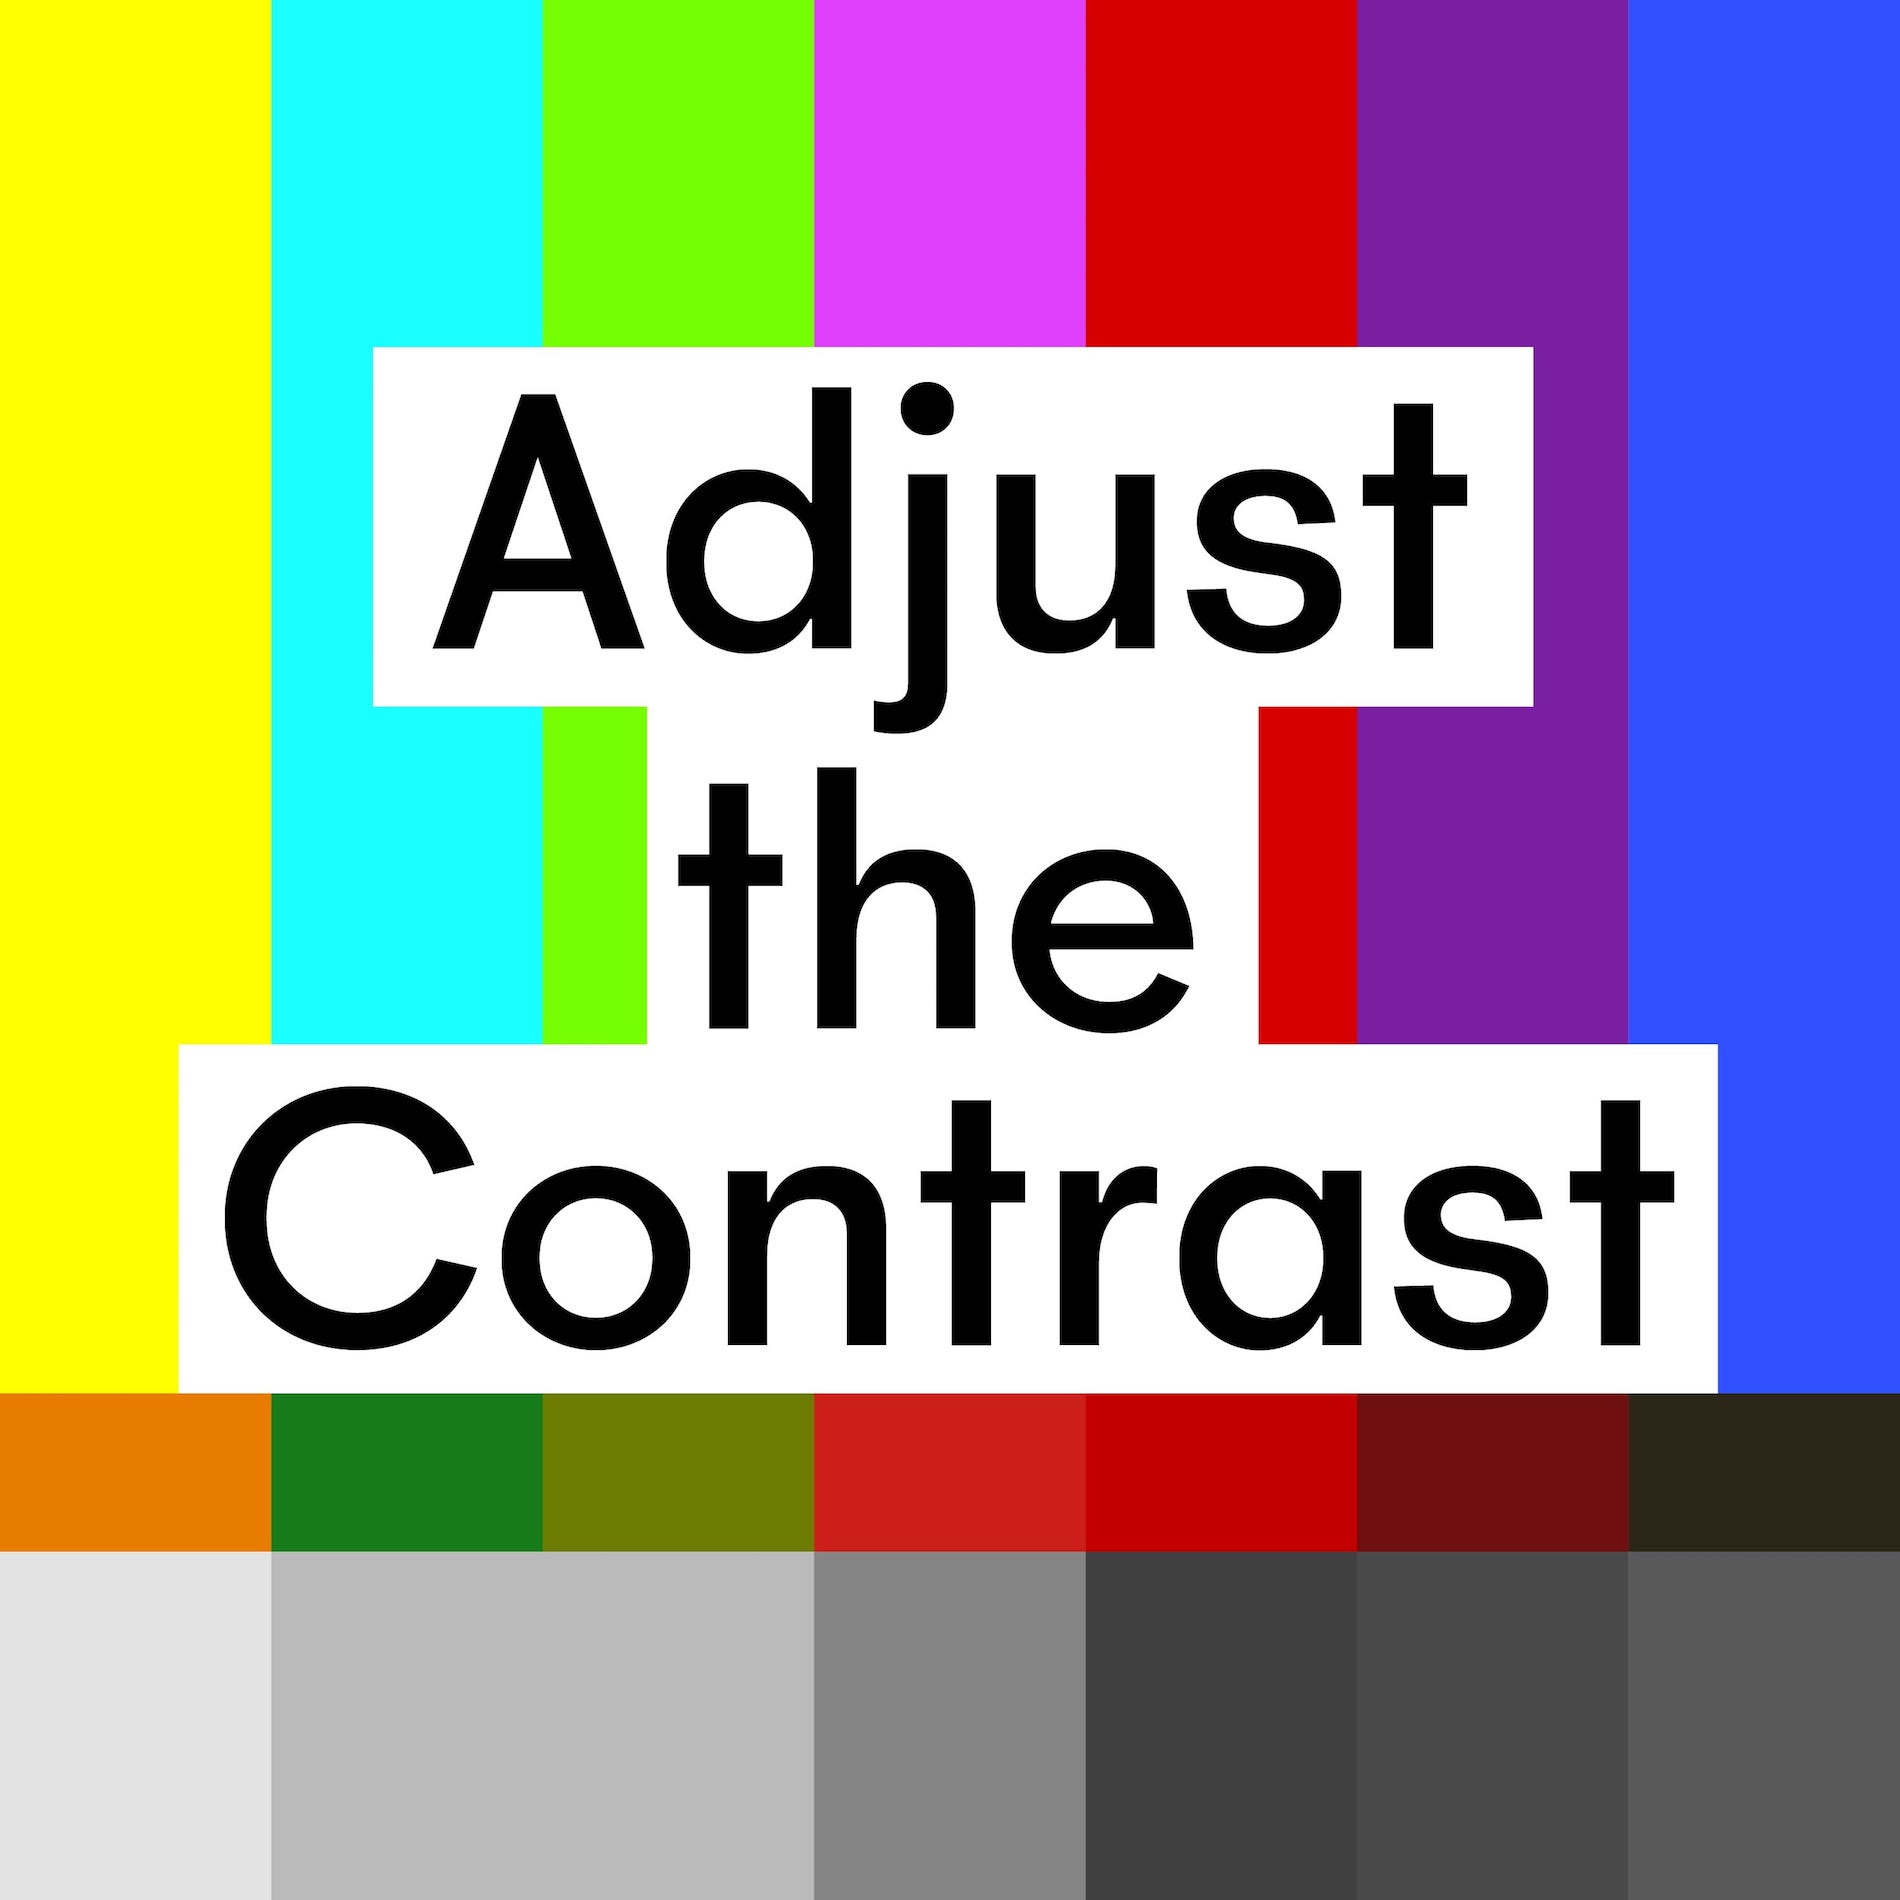 FAST Group launches new six-part podcast 'Adjust the Contrast' created by The Royals